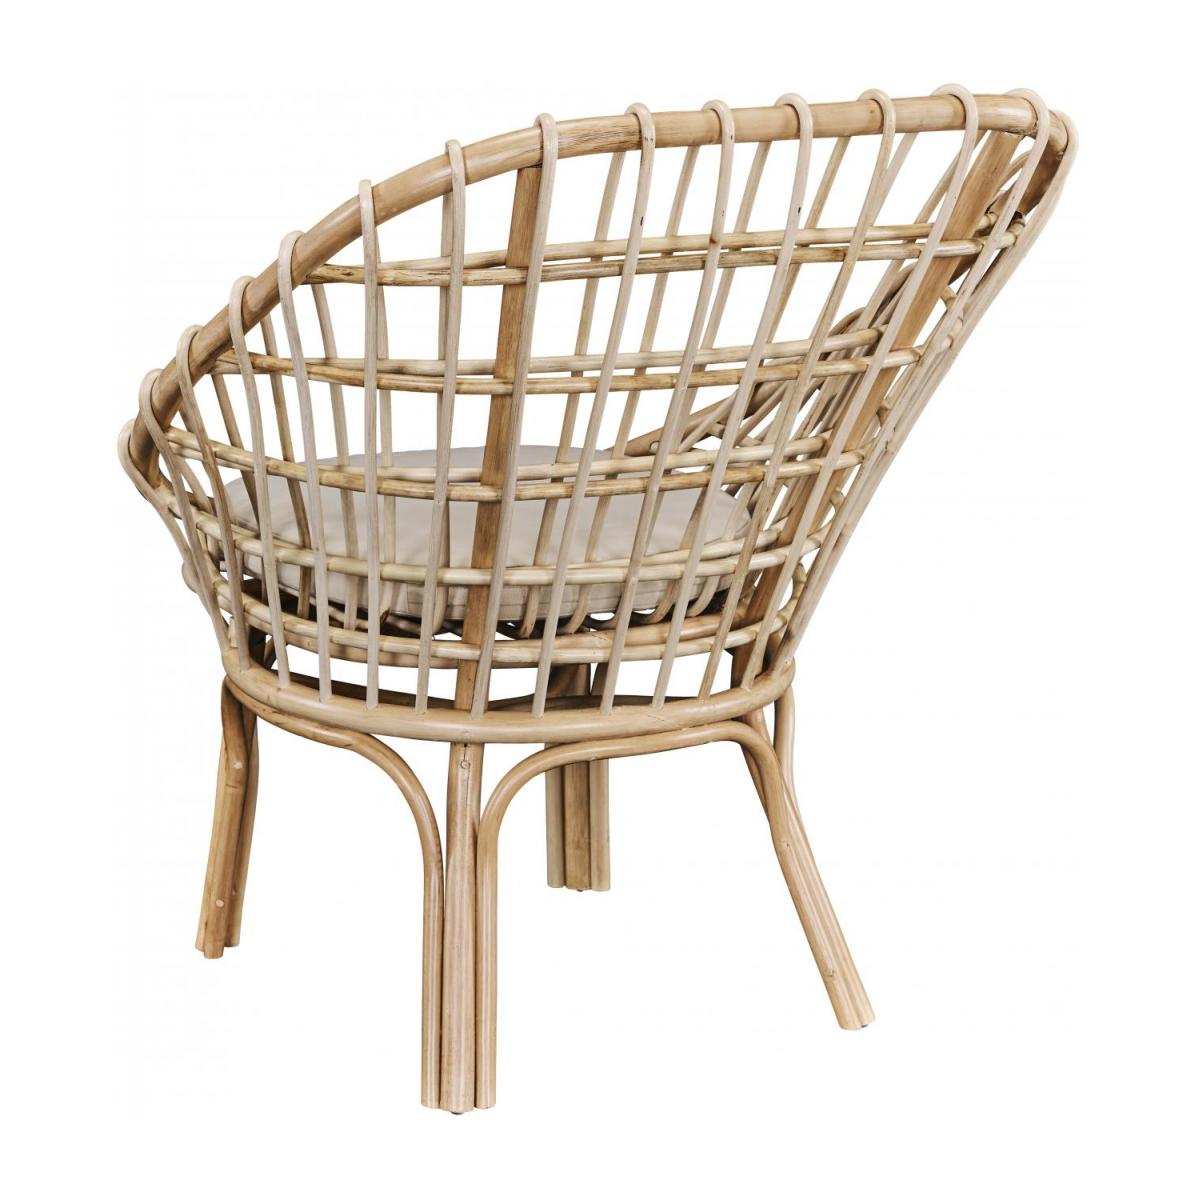 Sessel aus Rattan - Naturfarben - Design by Adrien Carvès n°4